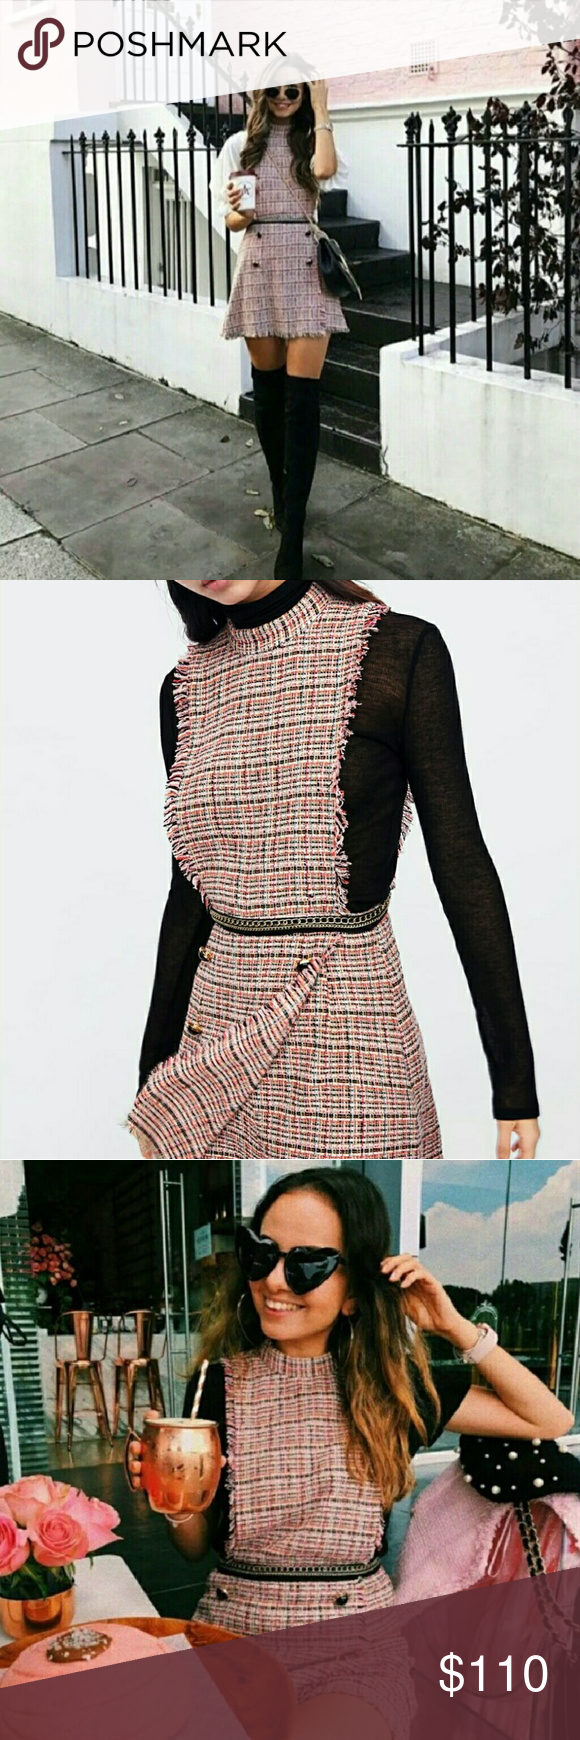 4e6a382caa6 BLOGGERS FAV - Zara BASIC Tweed Playsuit Trending all over Instagram! SOLD  OUT online!